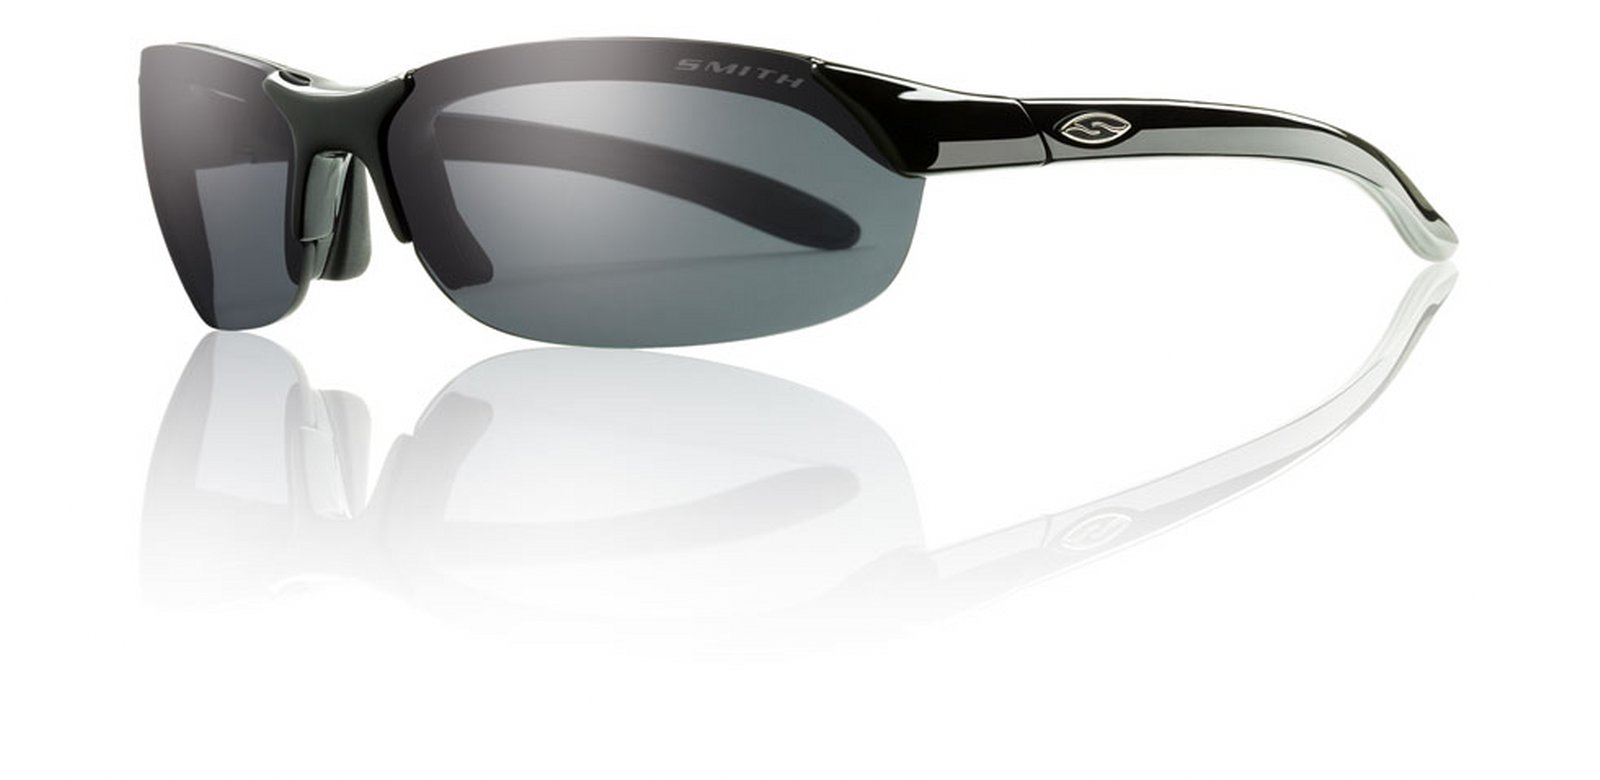 Smith Goggles Replacement Lenses : Smith parallel sunglasses replacement lenses louisiana